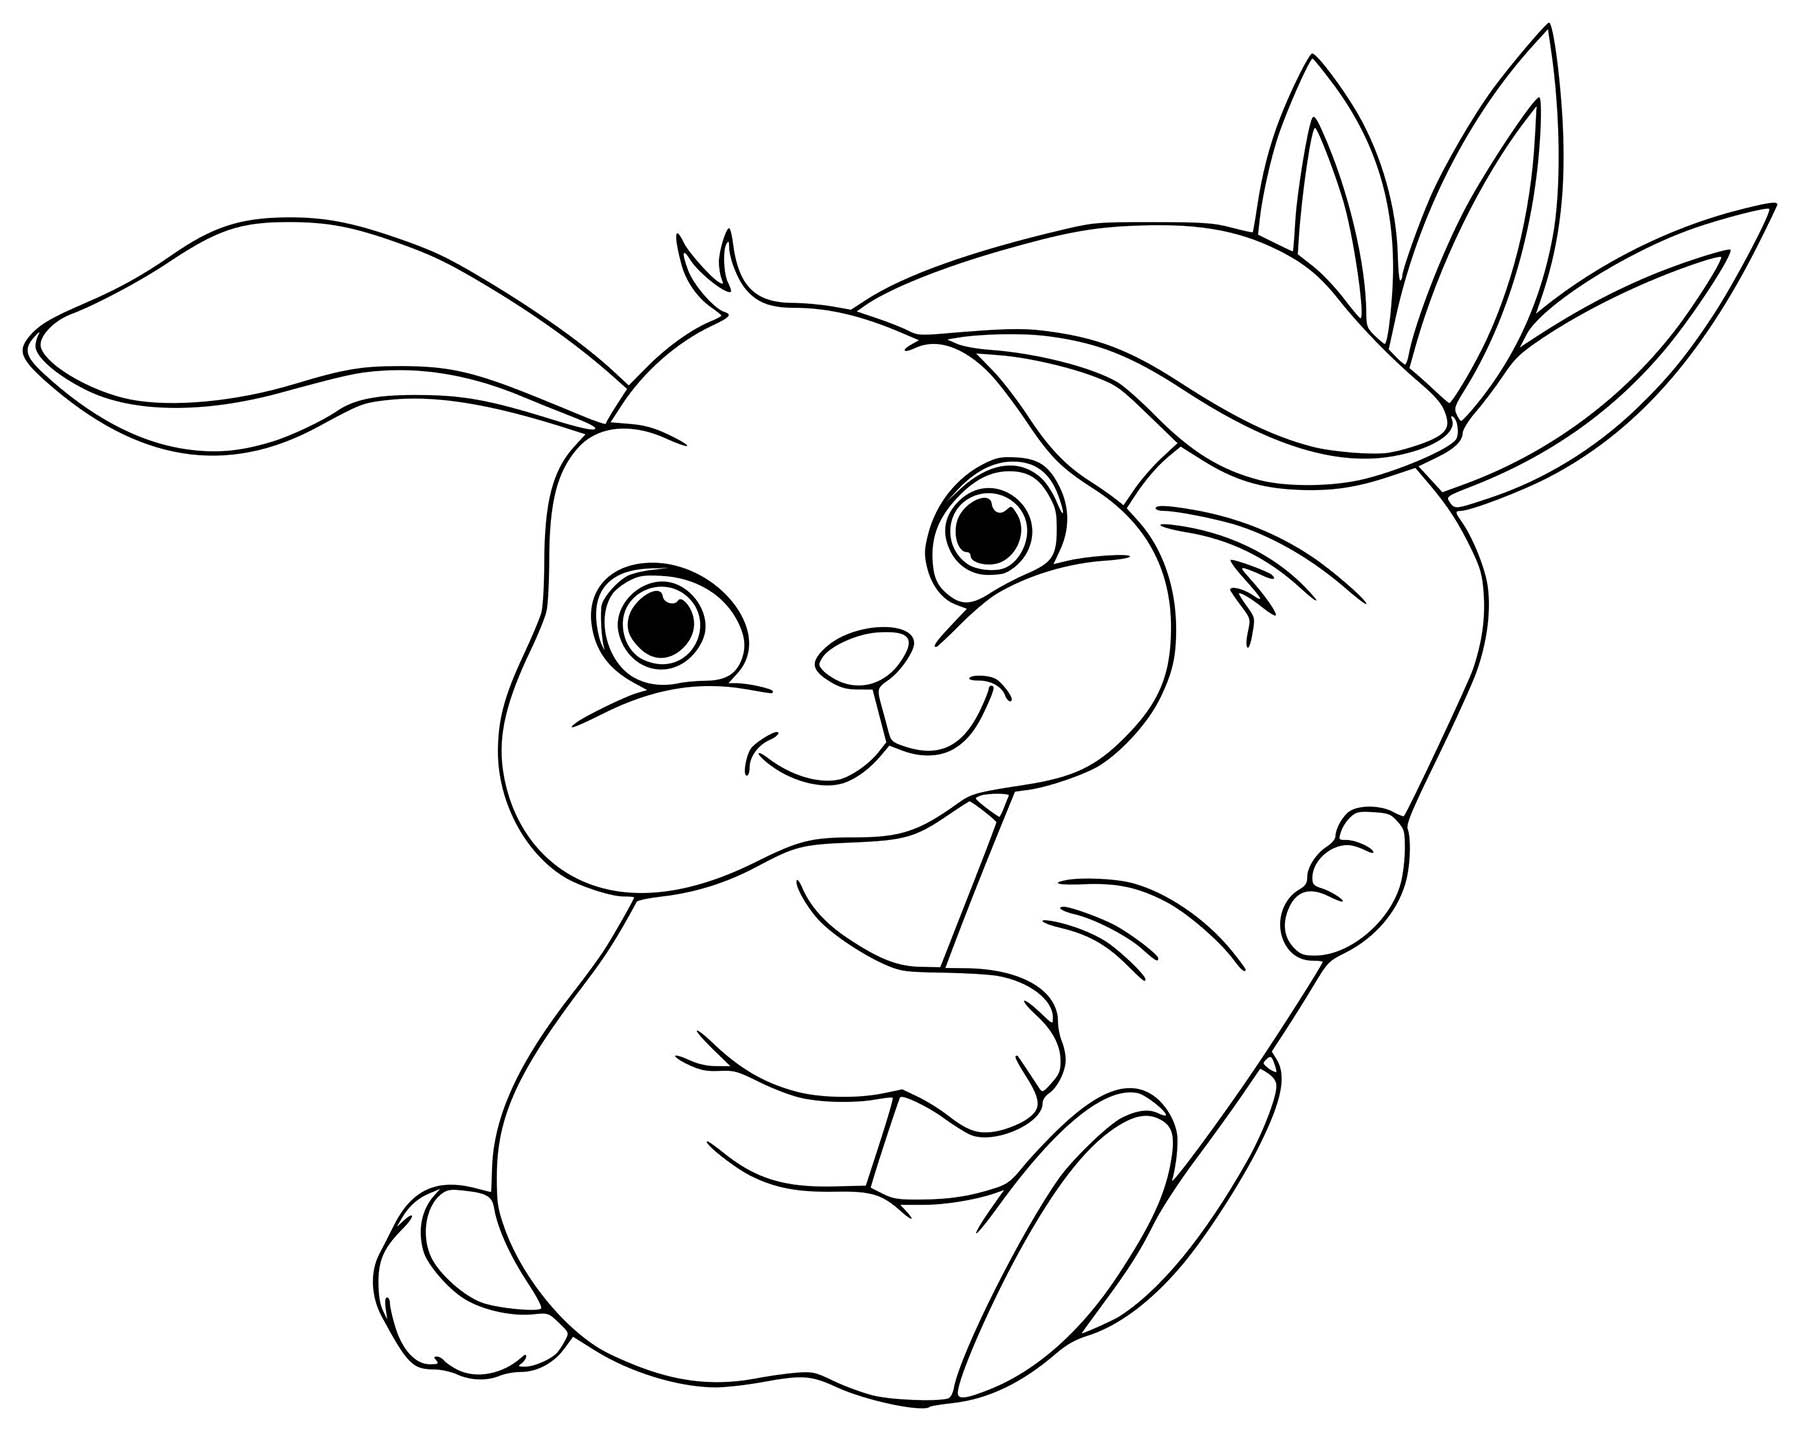 colouring pages of rabbit bunny coloring pages best coloring pages for kids rabbit pages colouring of